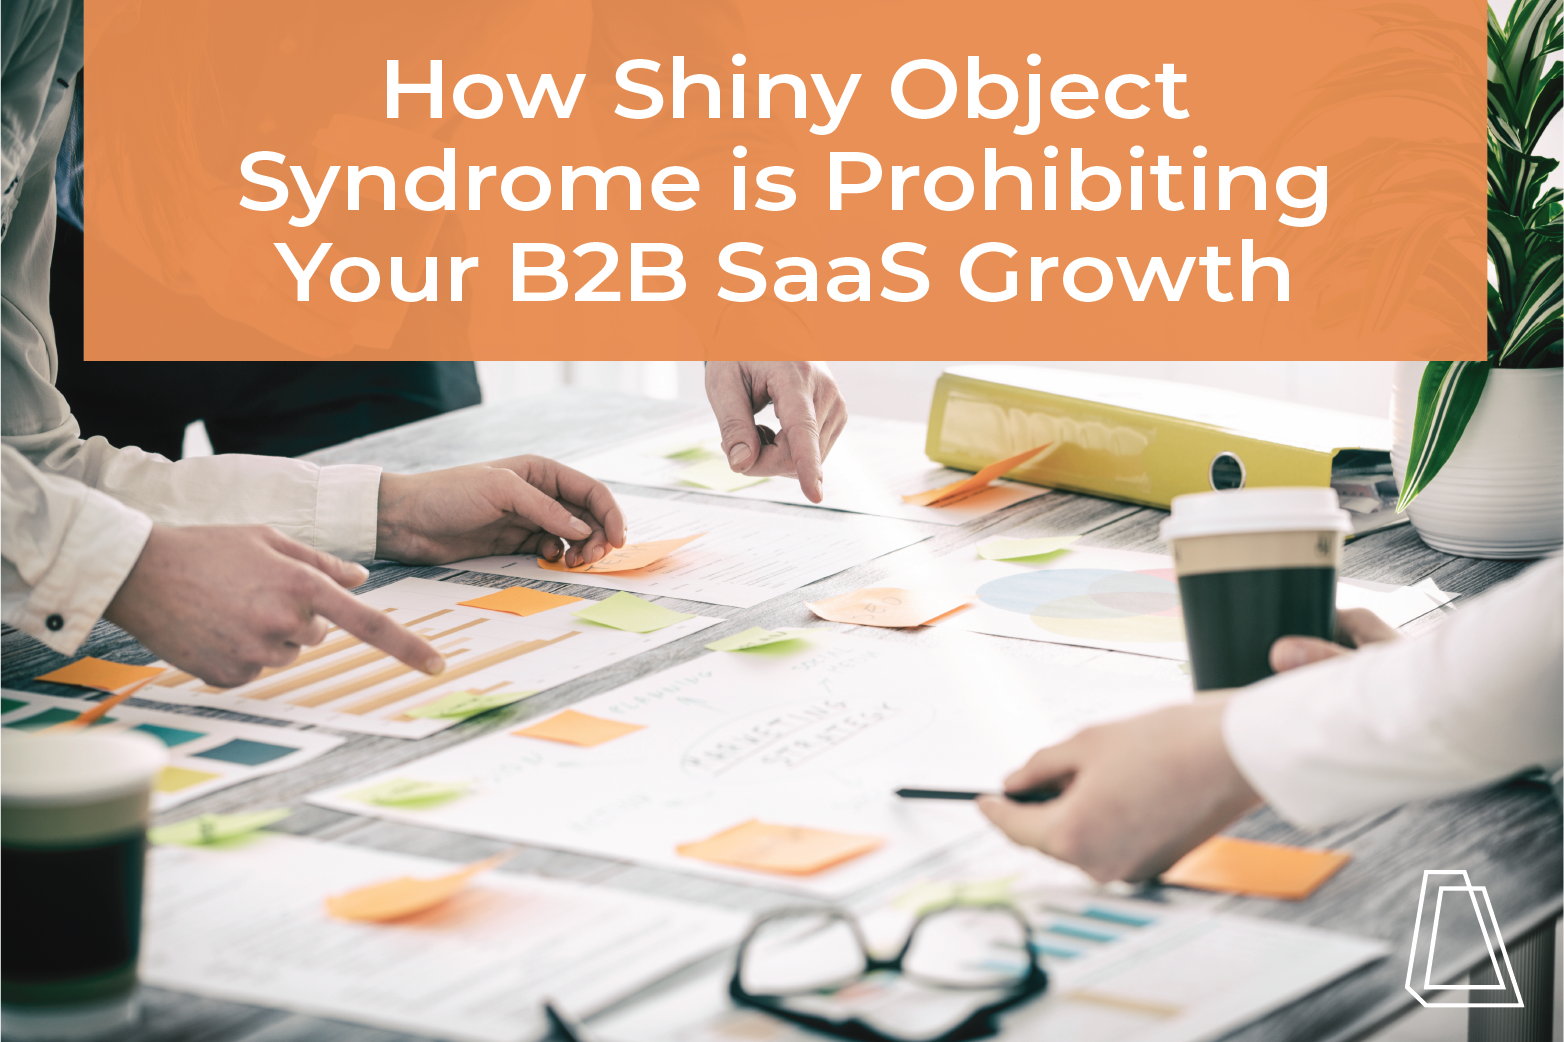 HOW SHINY OBJECT SYNDROME IS PROHIBITING YOUR B2B SAAS GROWTH